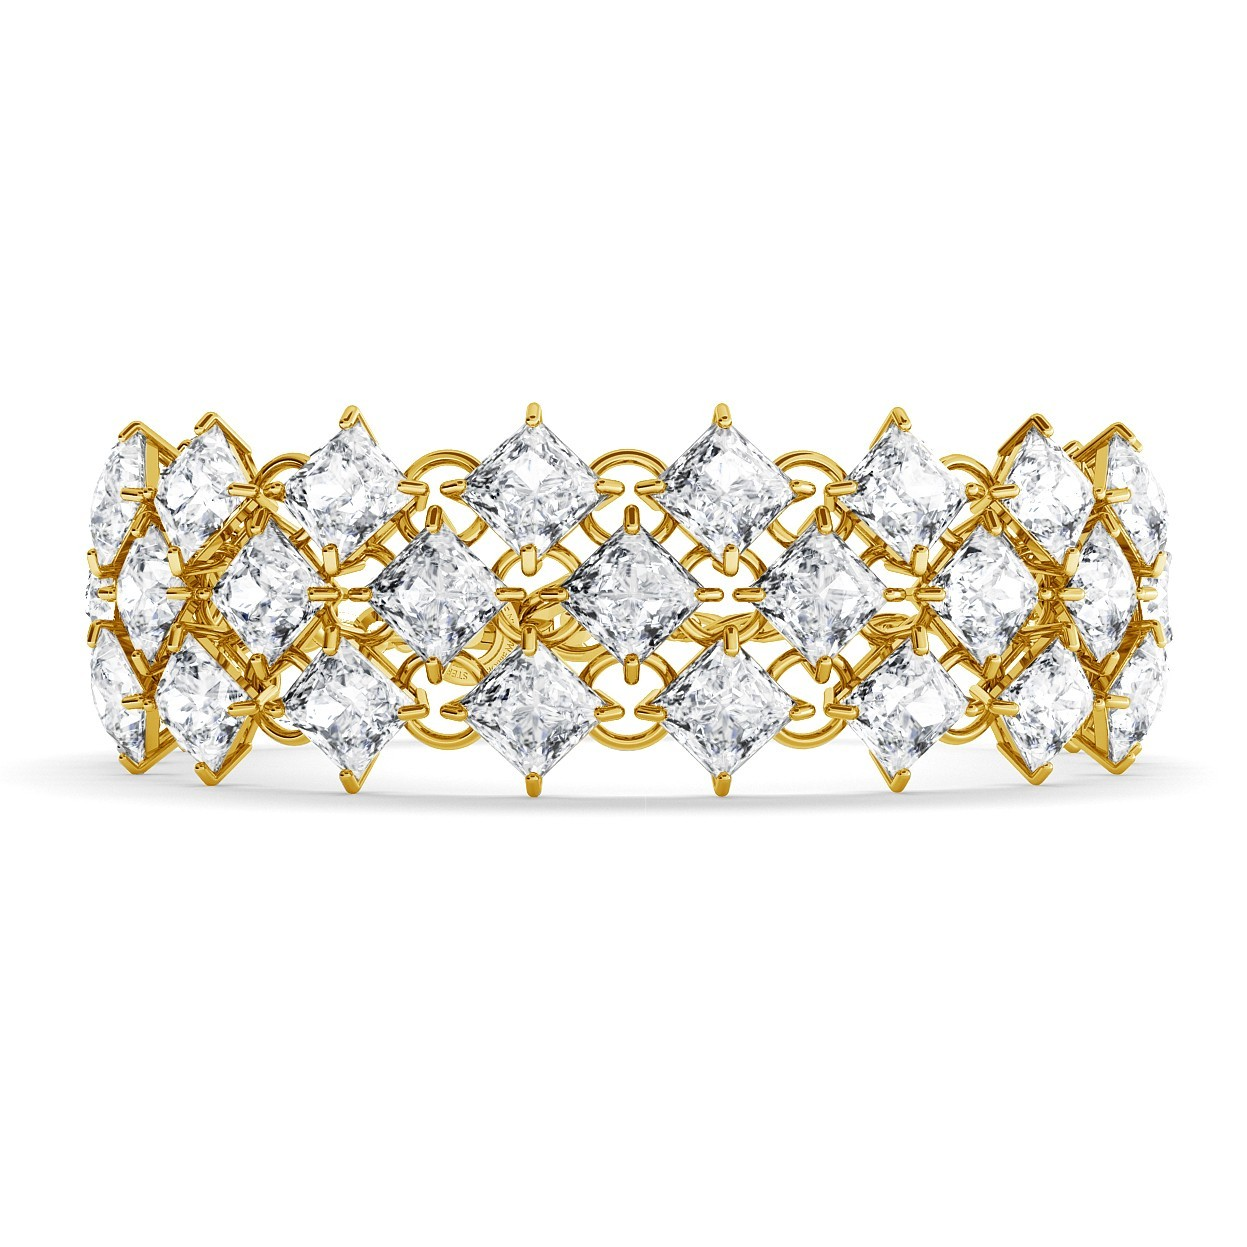 BRACELET WITH ZIRCONS, WEDDING JEWELLERY - MODEL 2